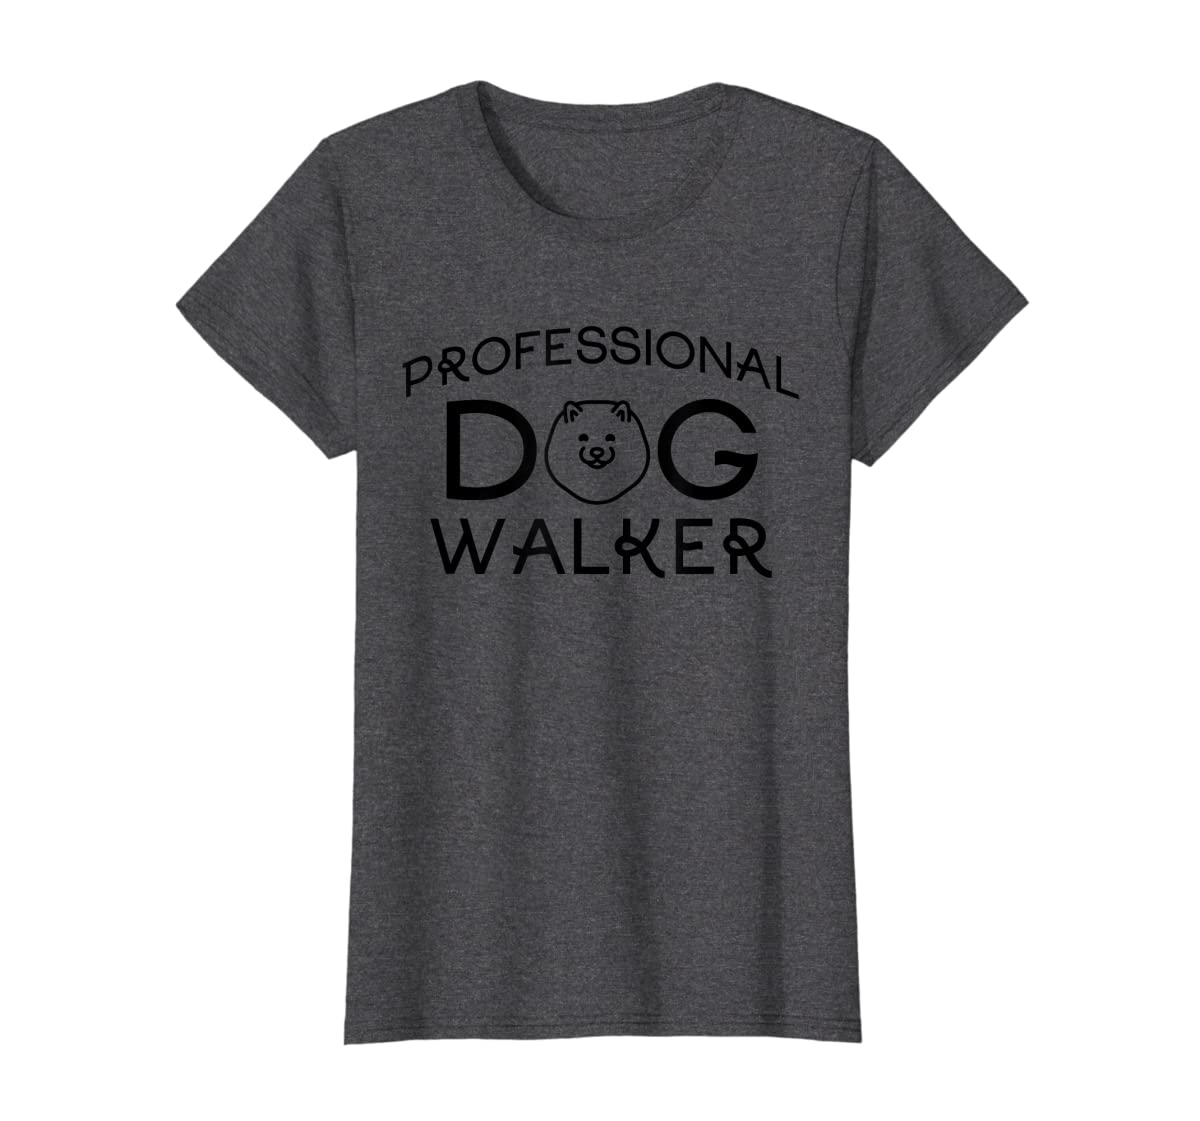 Professional Dog Walker Cute Puppy Tshirt Pet Lover T-Shirt-Women's T-Shirt-Dark Heather